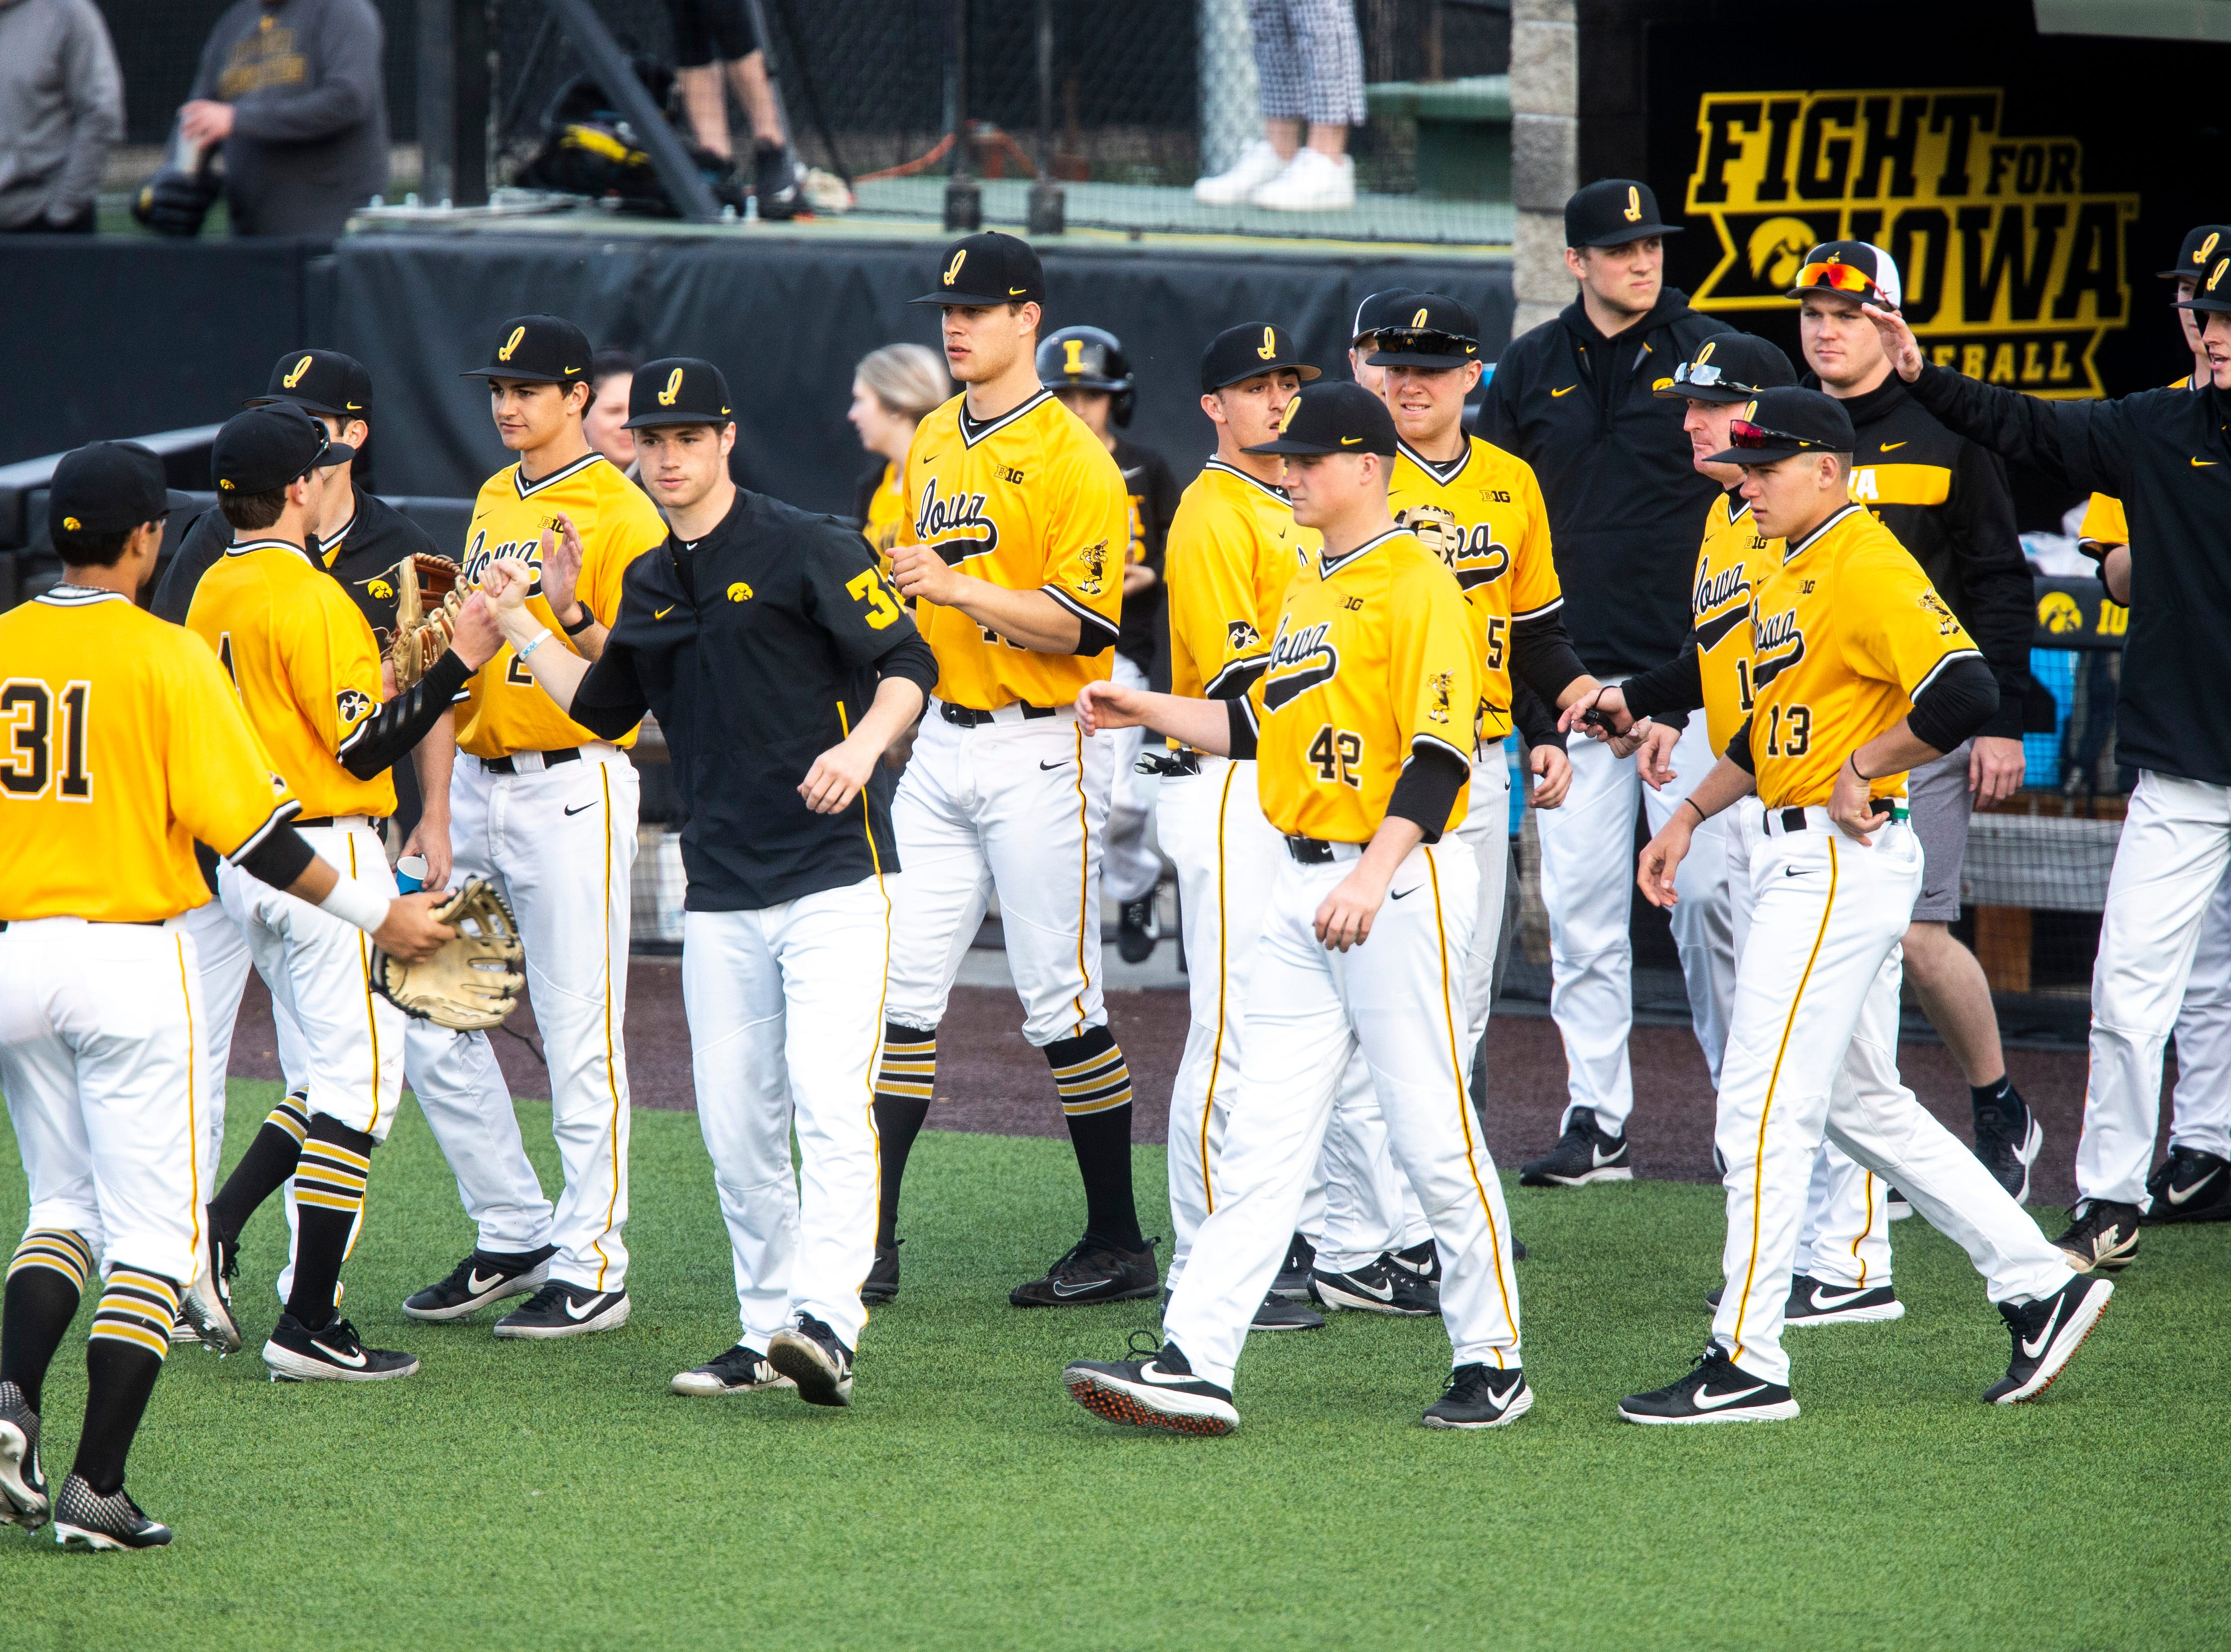 Iowa infielder Mitchell Boe gets a high-five from pitcher Jack Dreyer during a NCAA Big Ten Conference baseball game on Saturday, April 6, 2019, at Duane Banks Field in Iowa City, Iowa.